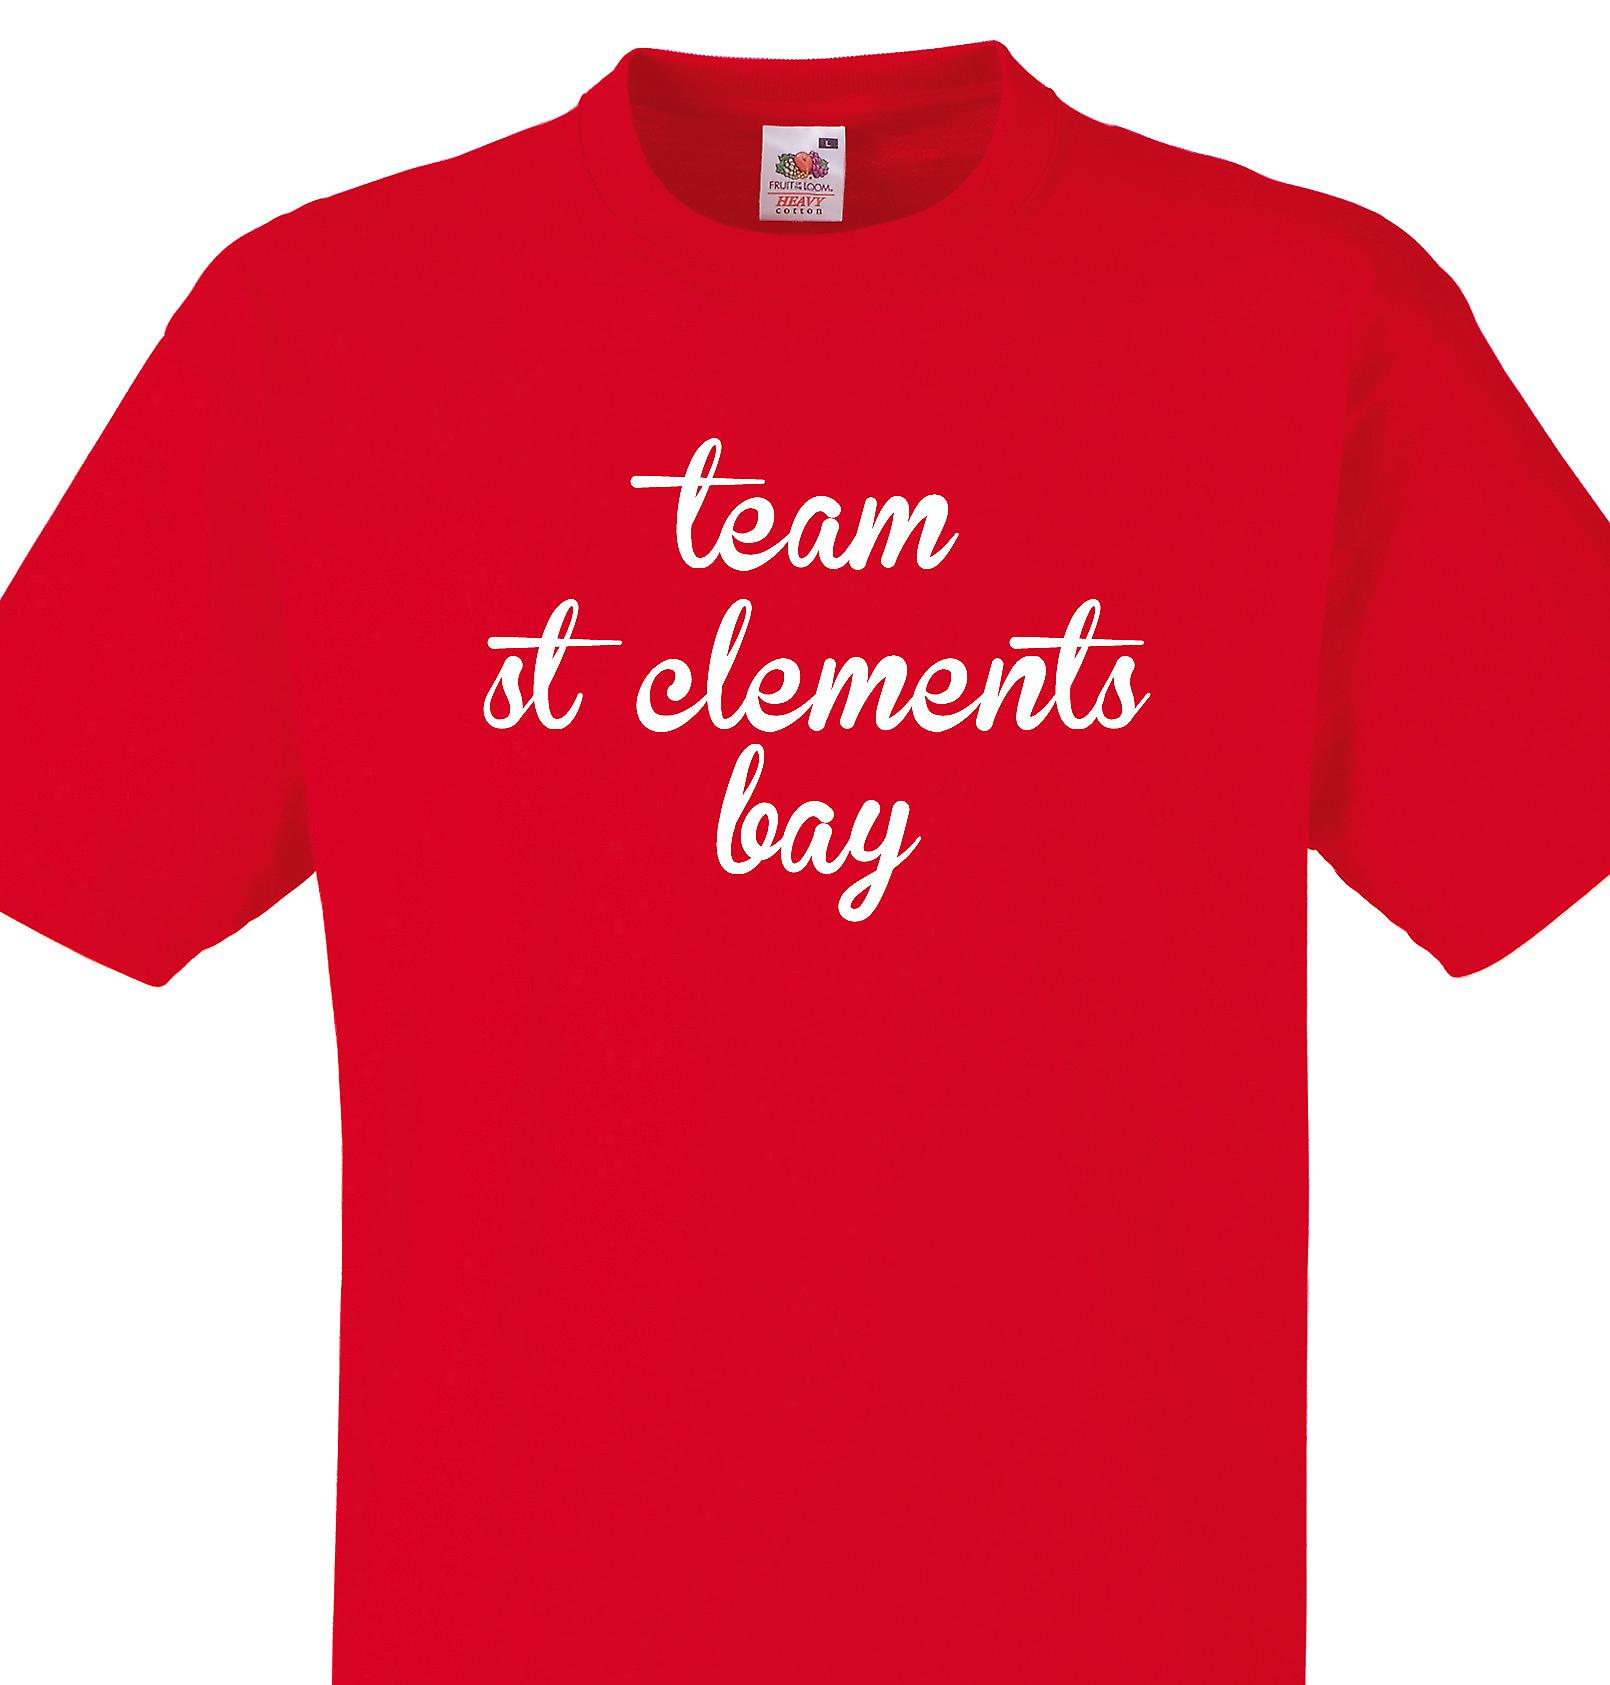 Team St clements bay Red T shirt